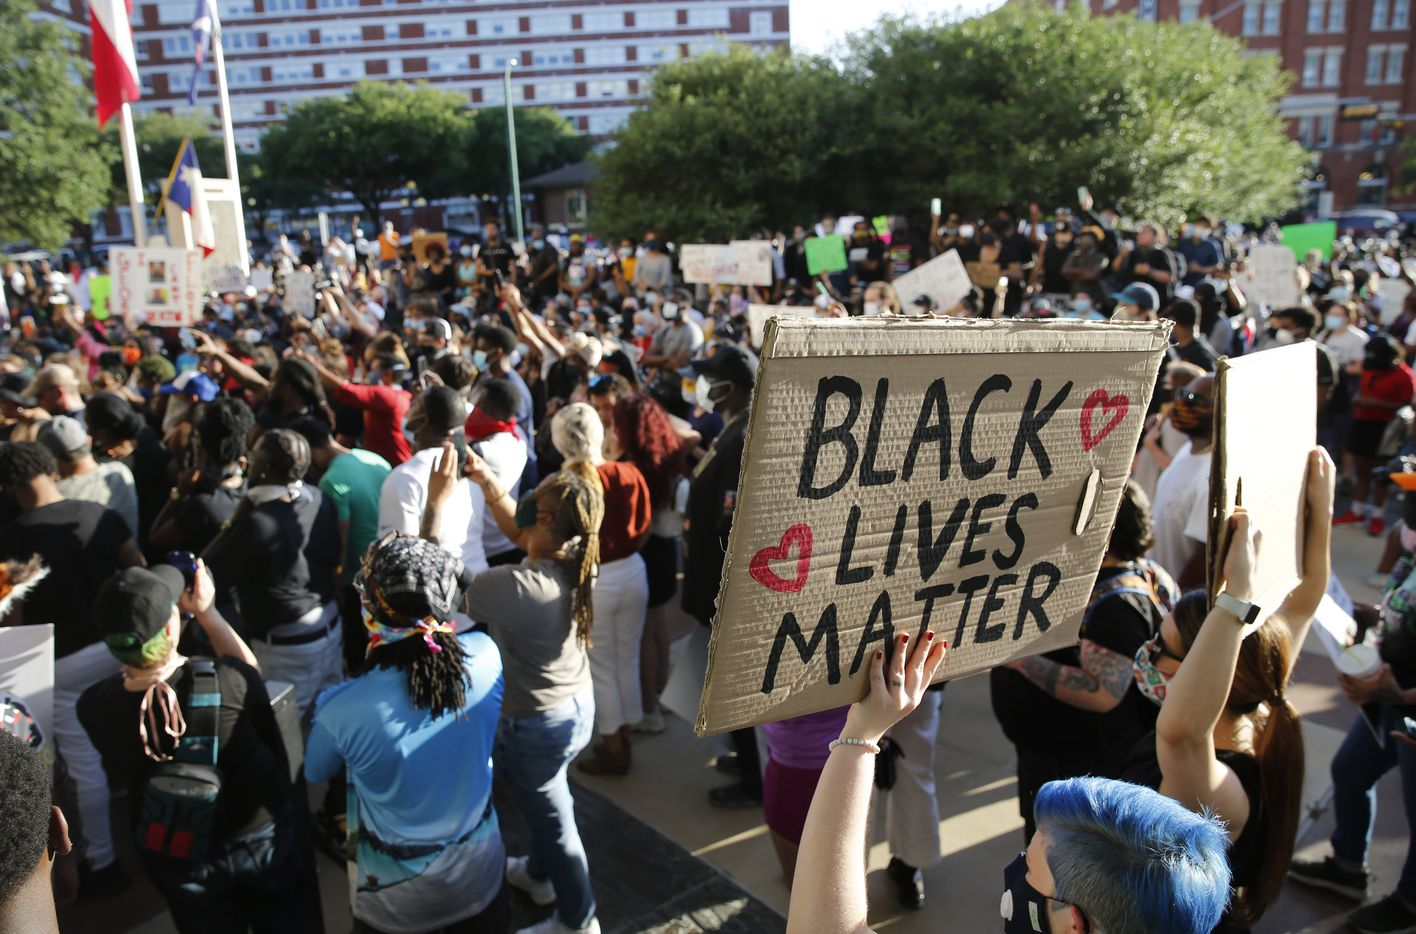 Protesters rally during a demonstration against police brutality in front of Dallas Police Department Headquarters in downtown Dallas, on Friday, May 29, 2020. George Floyd died in police custody in Minneapolis on May 25.